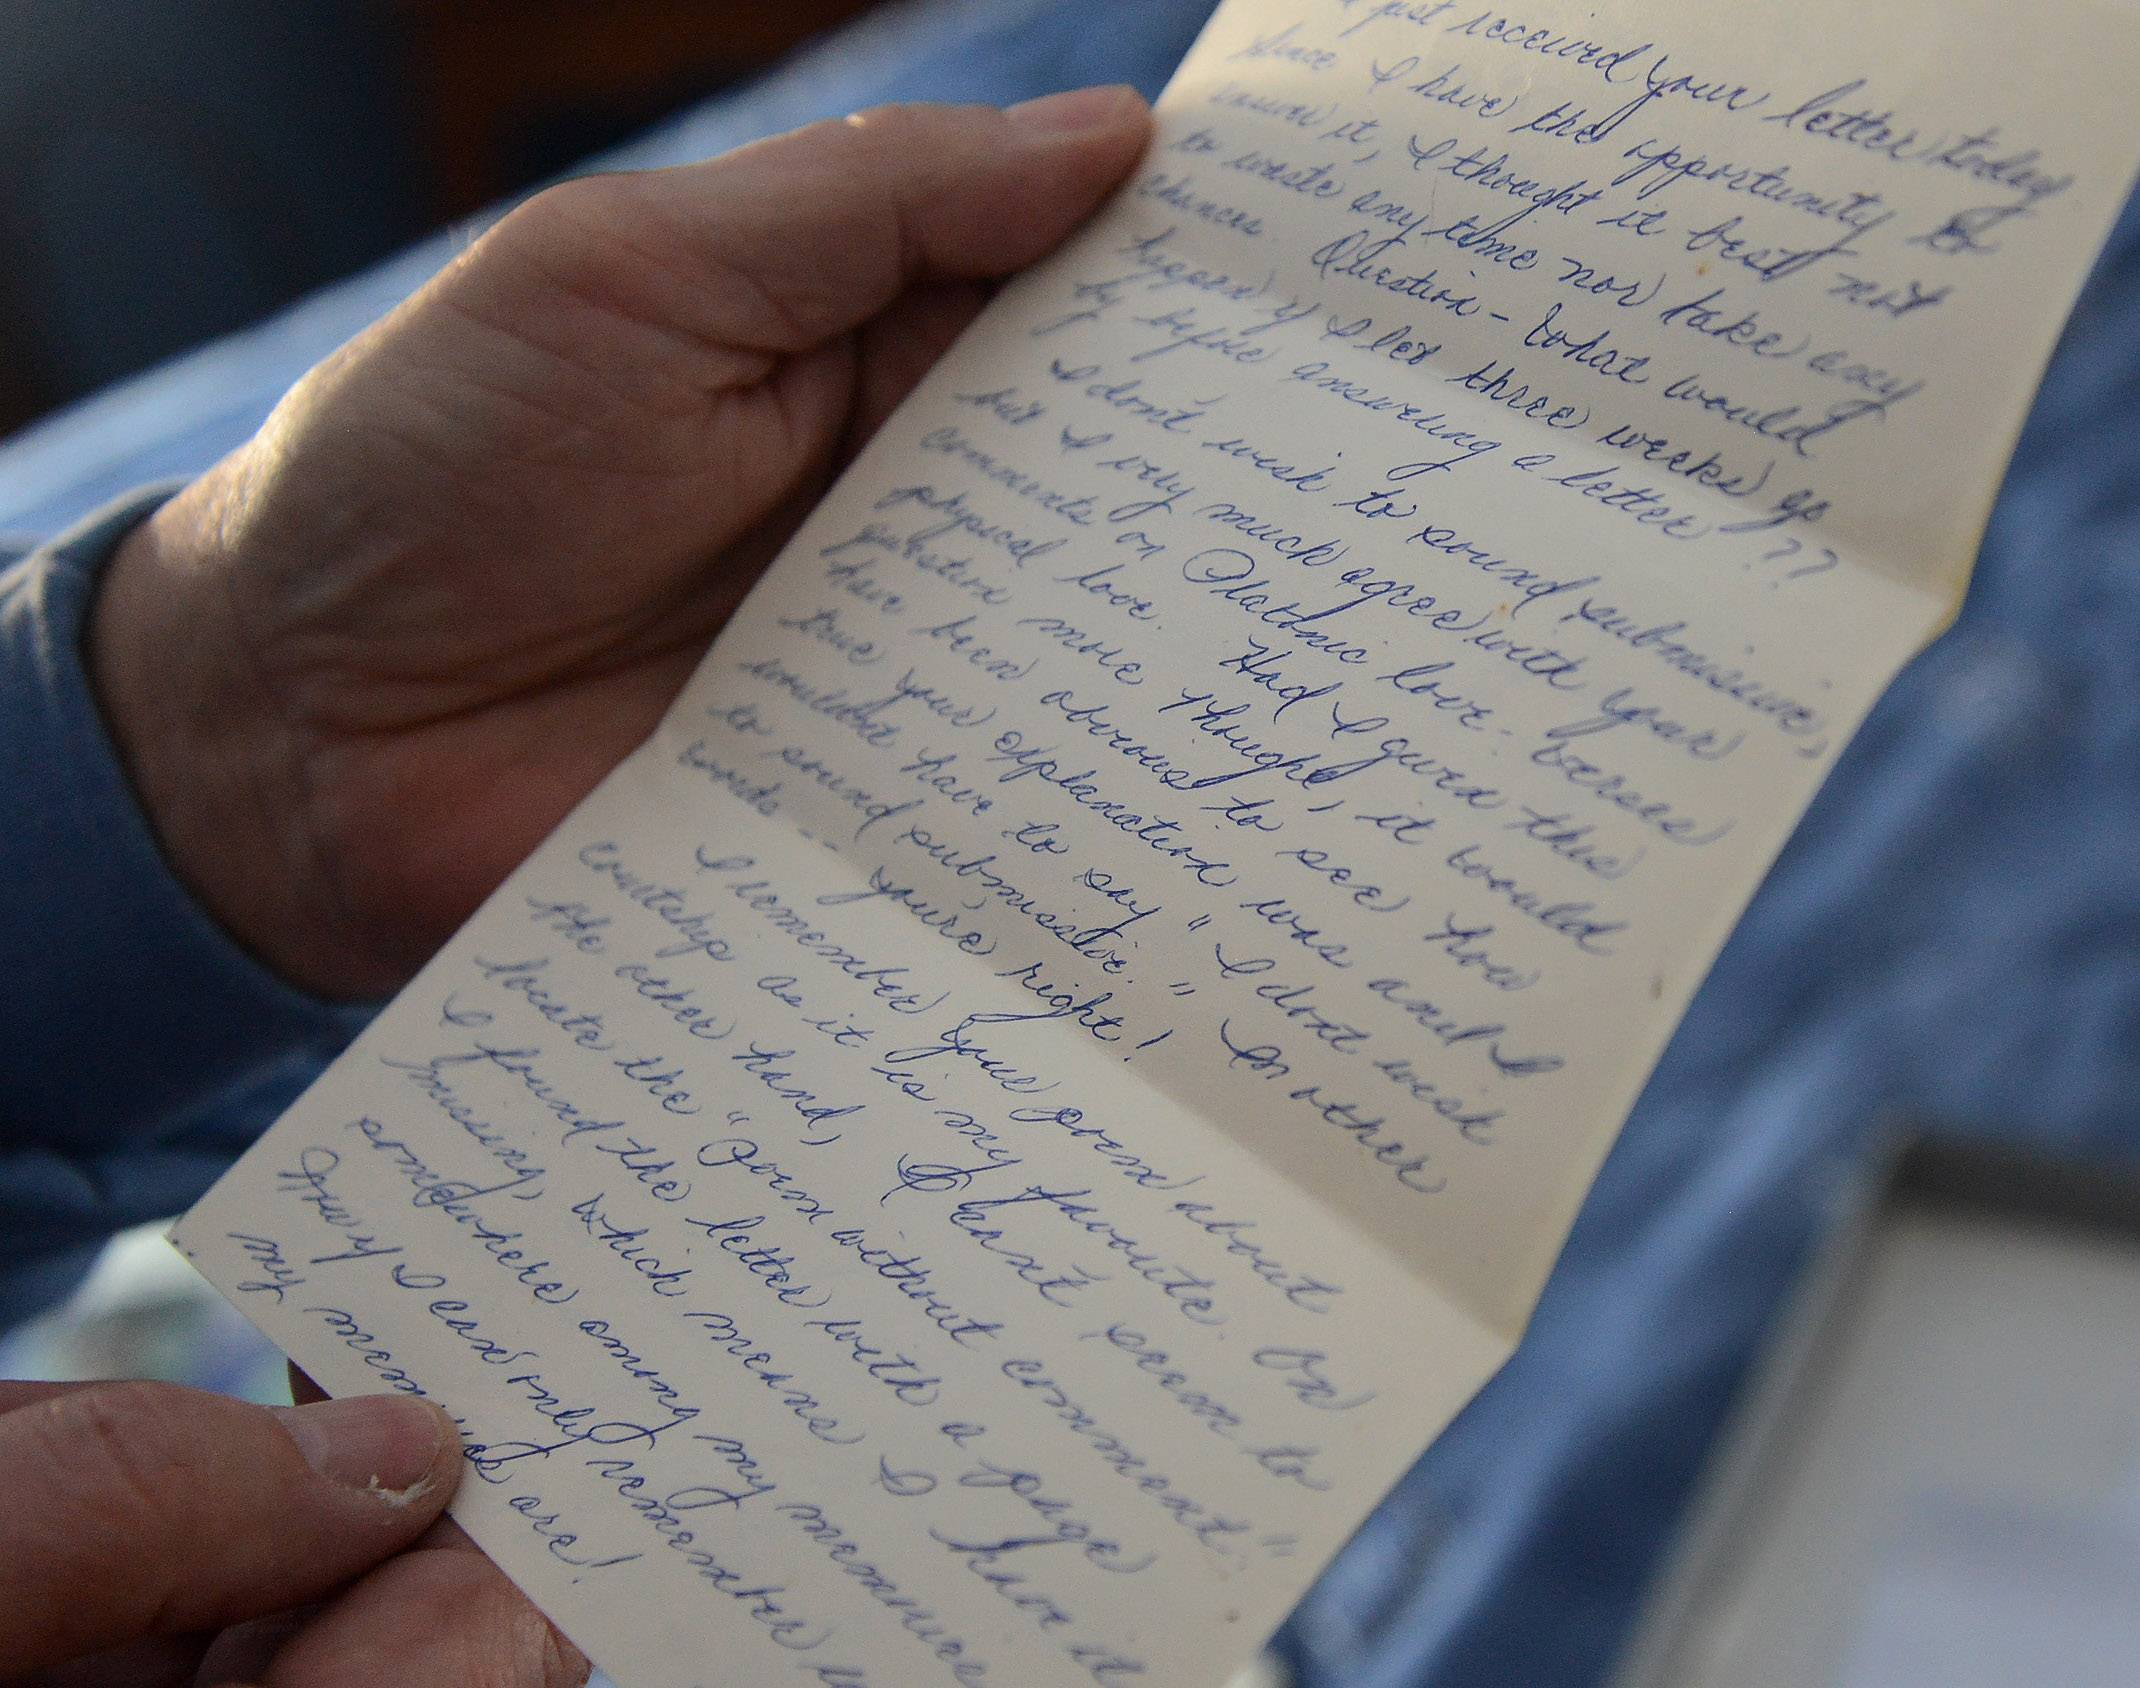 Maggie's handwritten letters from nearly a half-century ago rekindled the emotions from when their relationship began, says Dennis Depcik, who has written a book about how the couple fell in love.